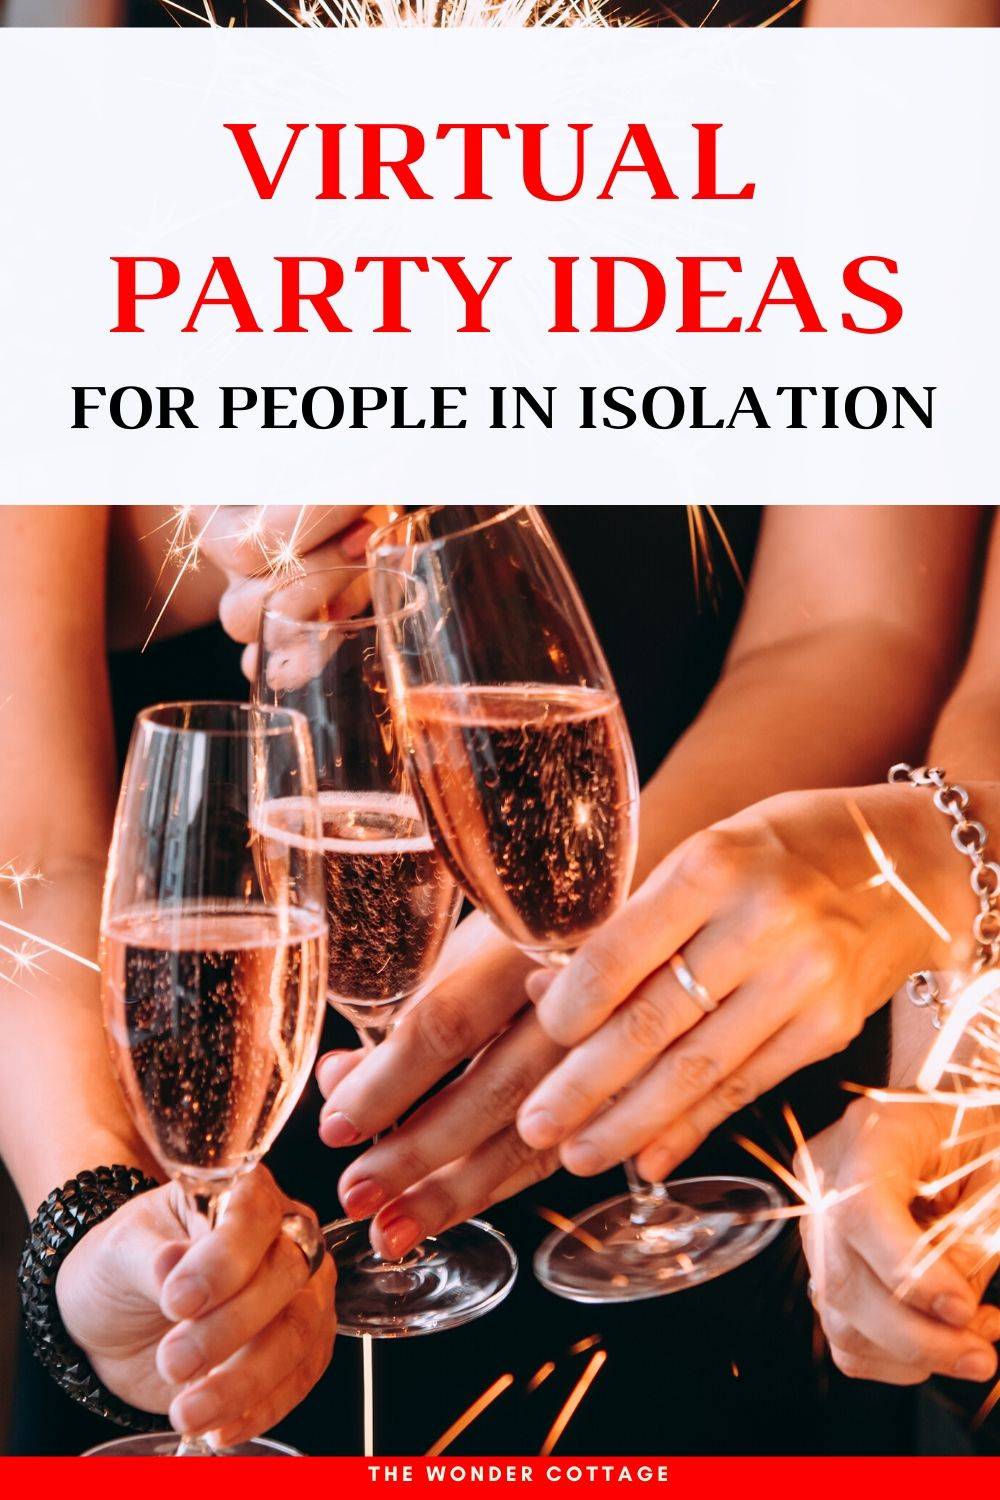 virtual party ideas for people in isolation